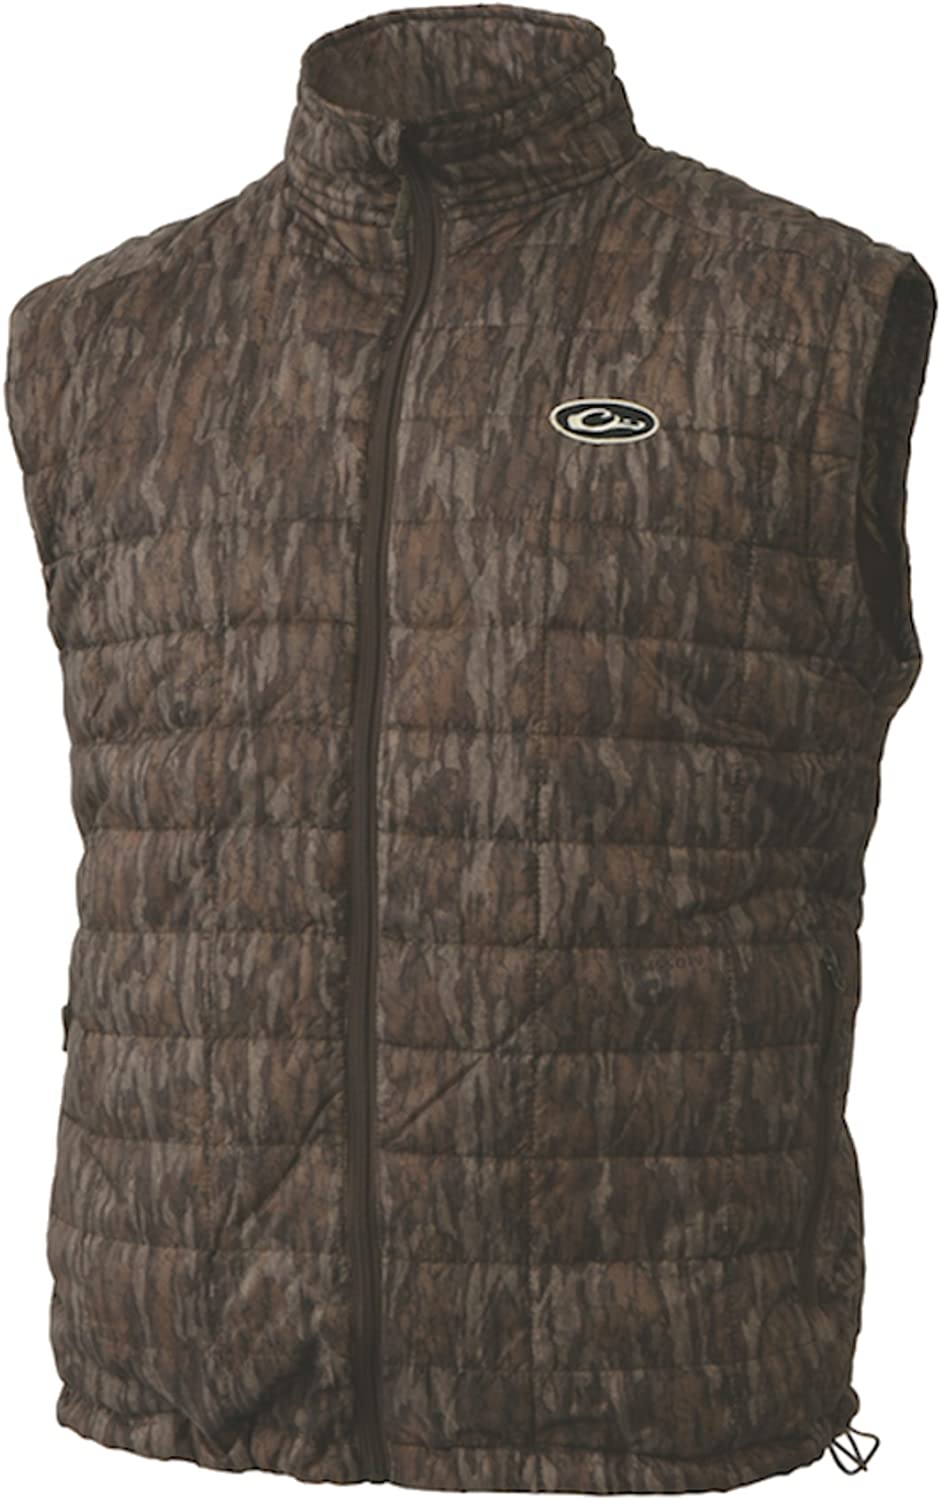 DRAKE SYNTHETIC DOWN PAC VEST (2X-LARGE)